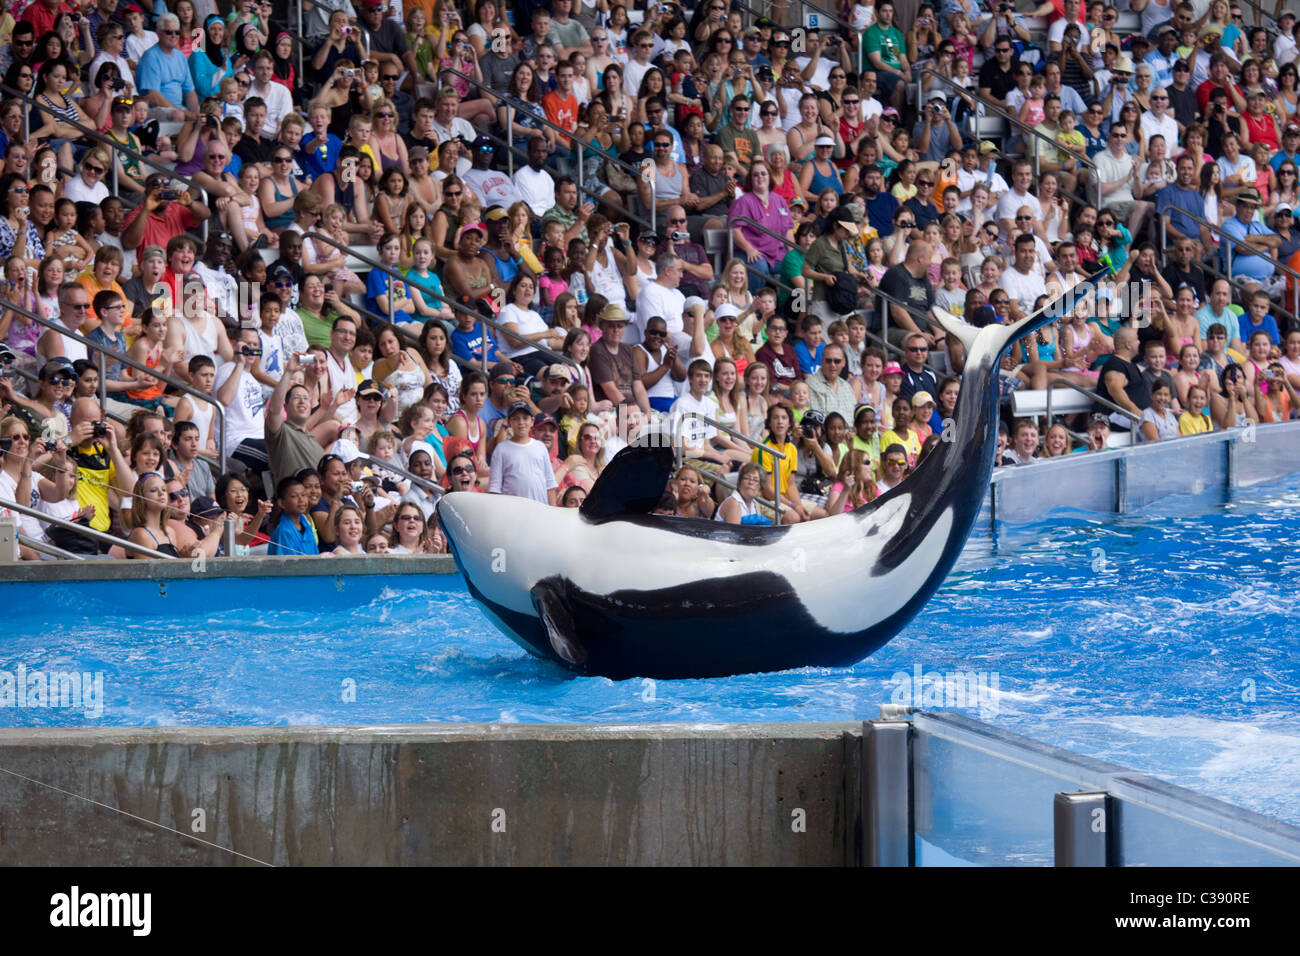 Killer whale performance in Orlando - Stock Image